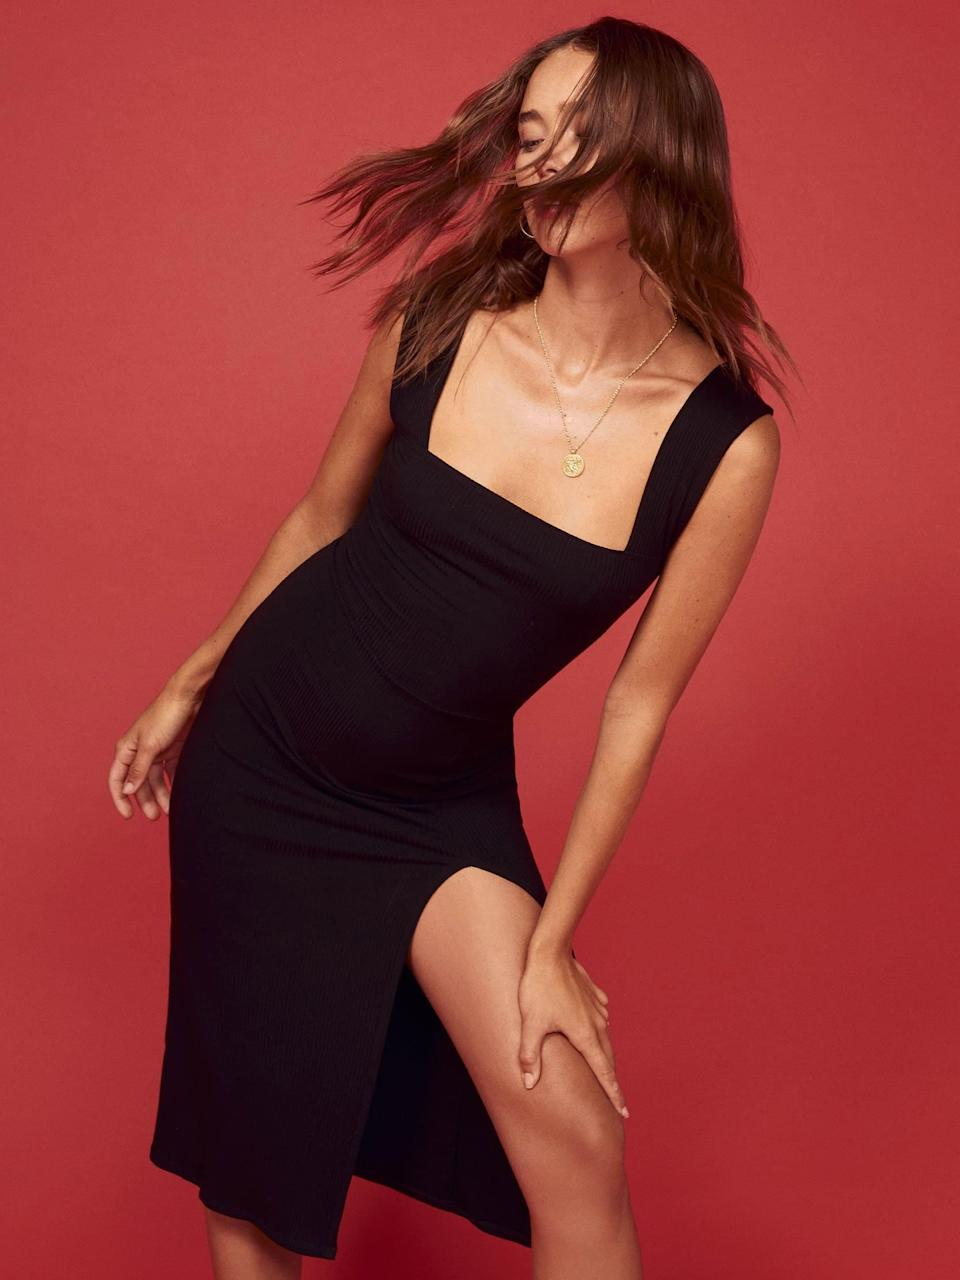 """<p>Because you always need an LBD on hand, get this <a href=""""https://www.popsugar.com/buy/Reformation-Cassi-Dress-572488?p_name=Reformation%20Cassi%20Dress&retailer=thereformation.com&pid=572488&price=148&evar1=fab%3Aus&evar9=46270939&evar98=https%3A%2F%2Fwww.popsugar.com%2Ffashion%2Fphoto-gallery%2F46270939%2Fimage%2F47458030%2FReformation-Cassi-Dress&list1=shopping%2Cdresses%2Csummer%2Csummer%20fashion%2Creformation&prop13=mobile&pdata=1"""" class=""""link rapid-noclick-resp"""" rel=""""nofollow noopener"""" target=""""_blank"""" data-ylk=""""slk:Reformation Cassi Dress"""">Reformation Cassi Dress</a> ($148).</p>"""